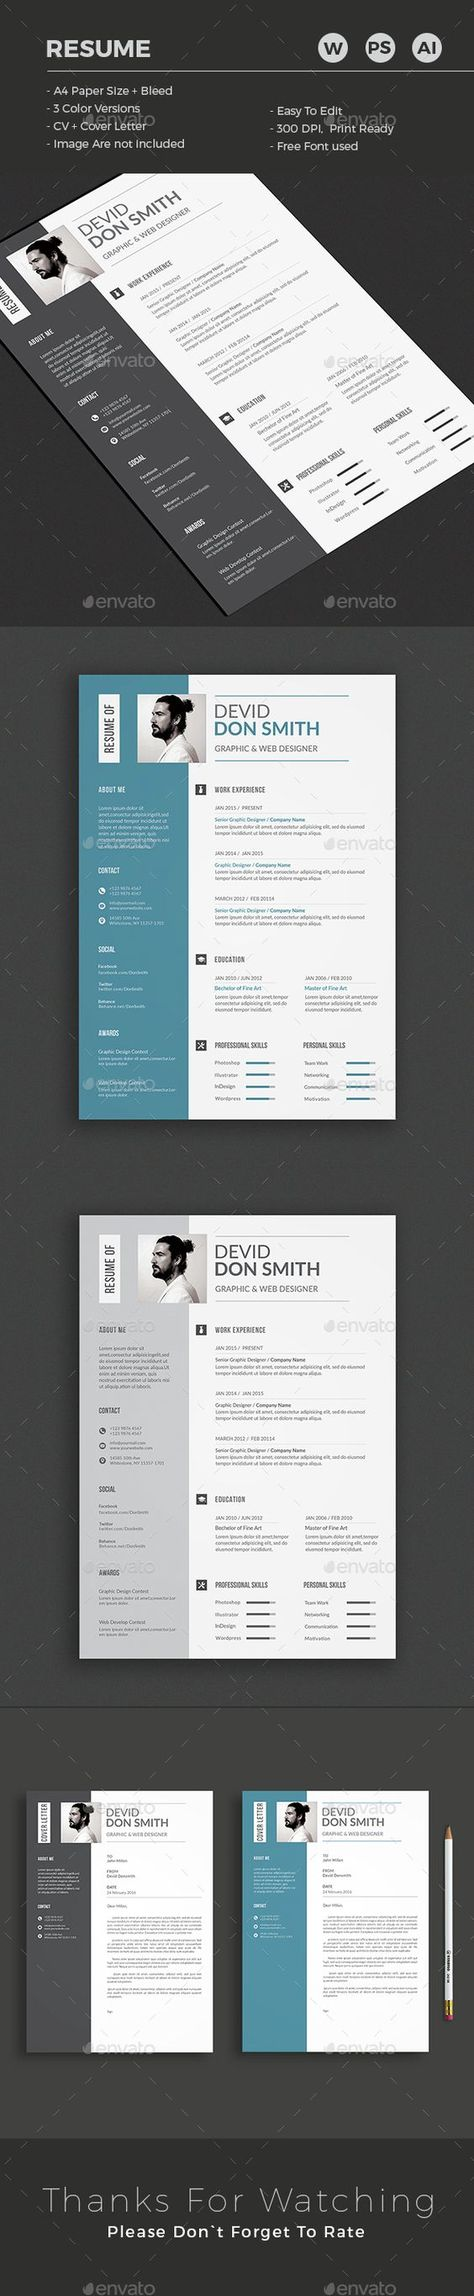 30 Free & Beautiful Resume Templates To Download | Template, Behance ...